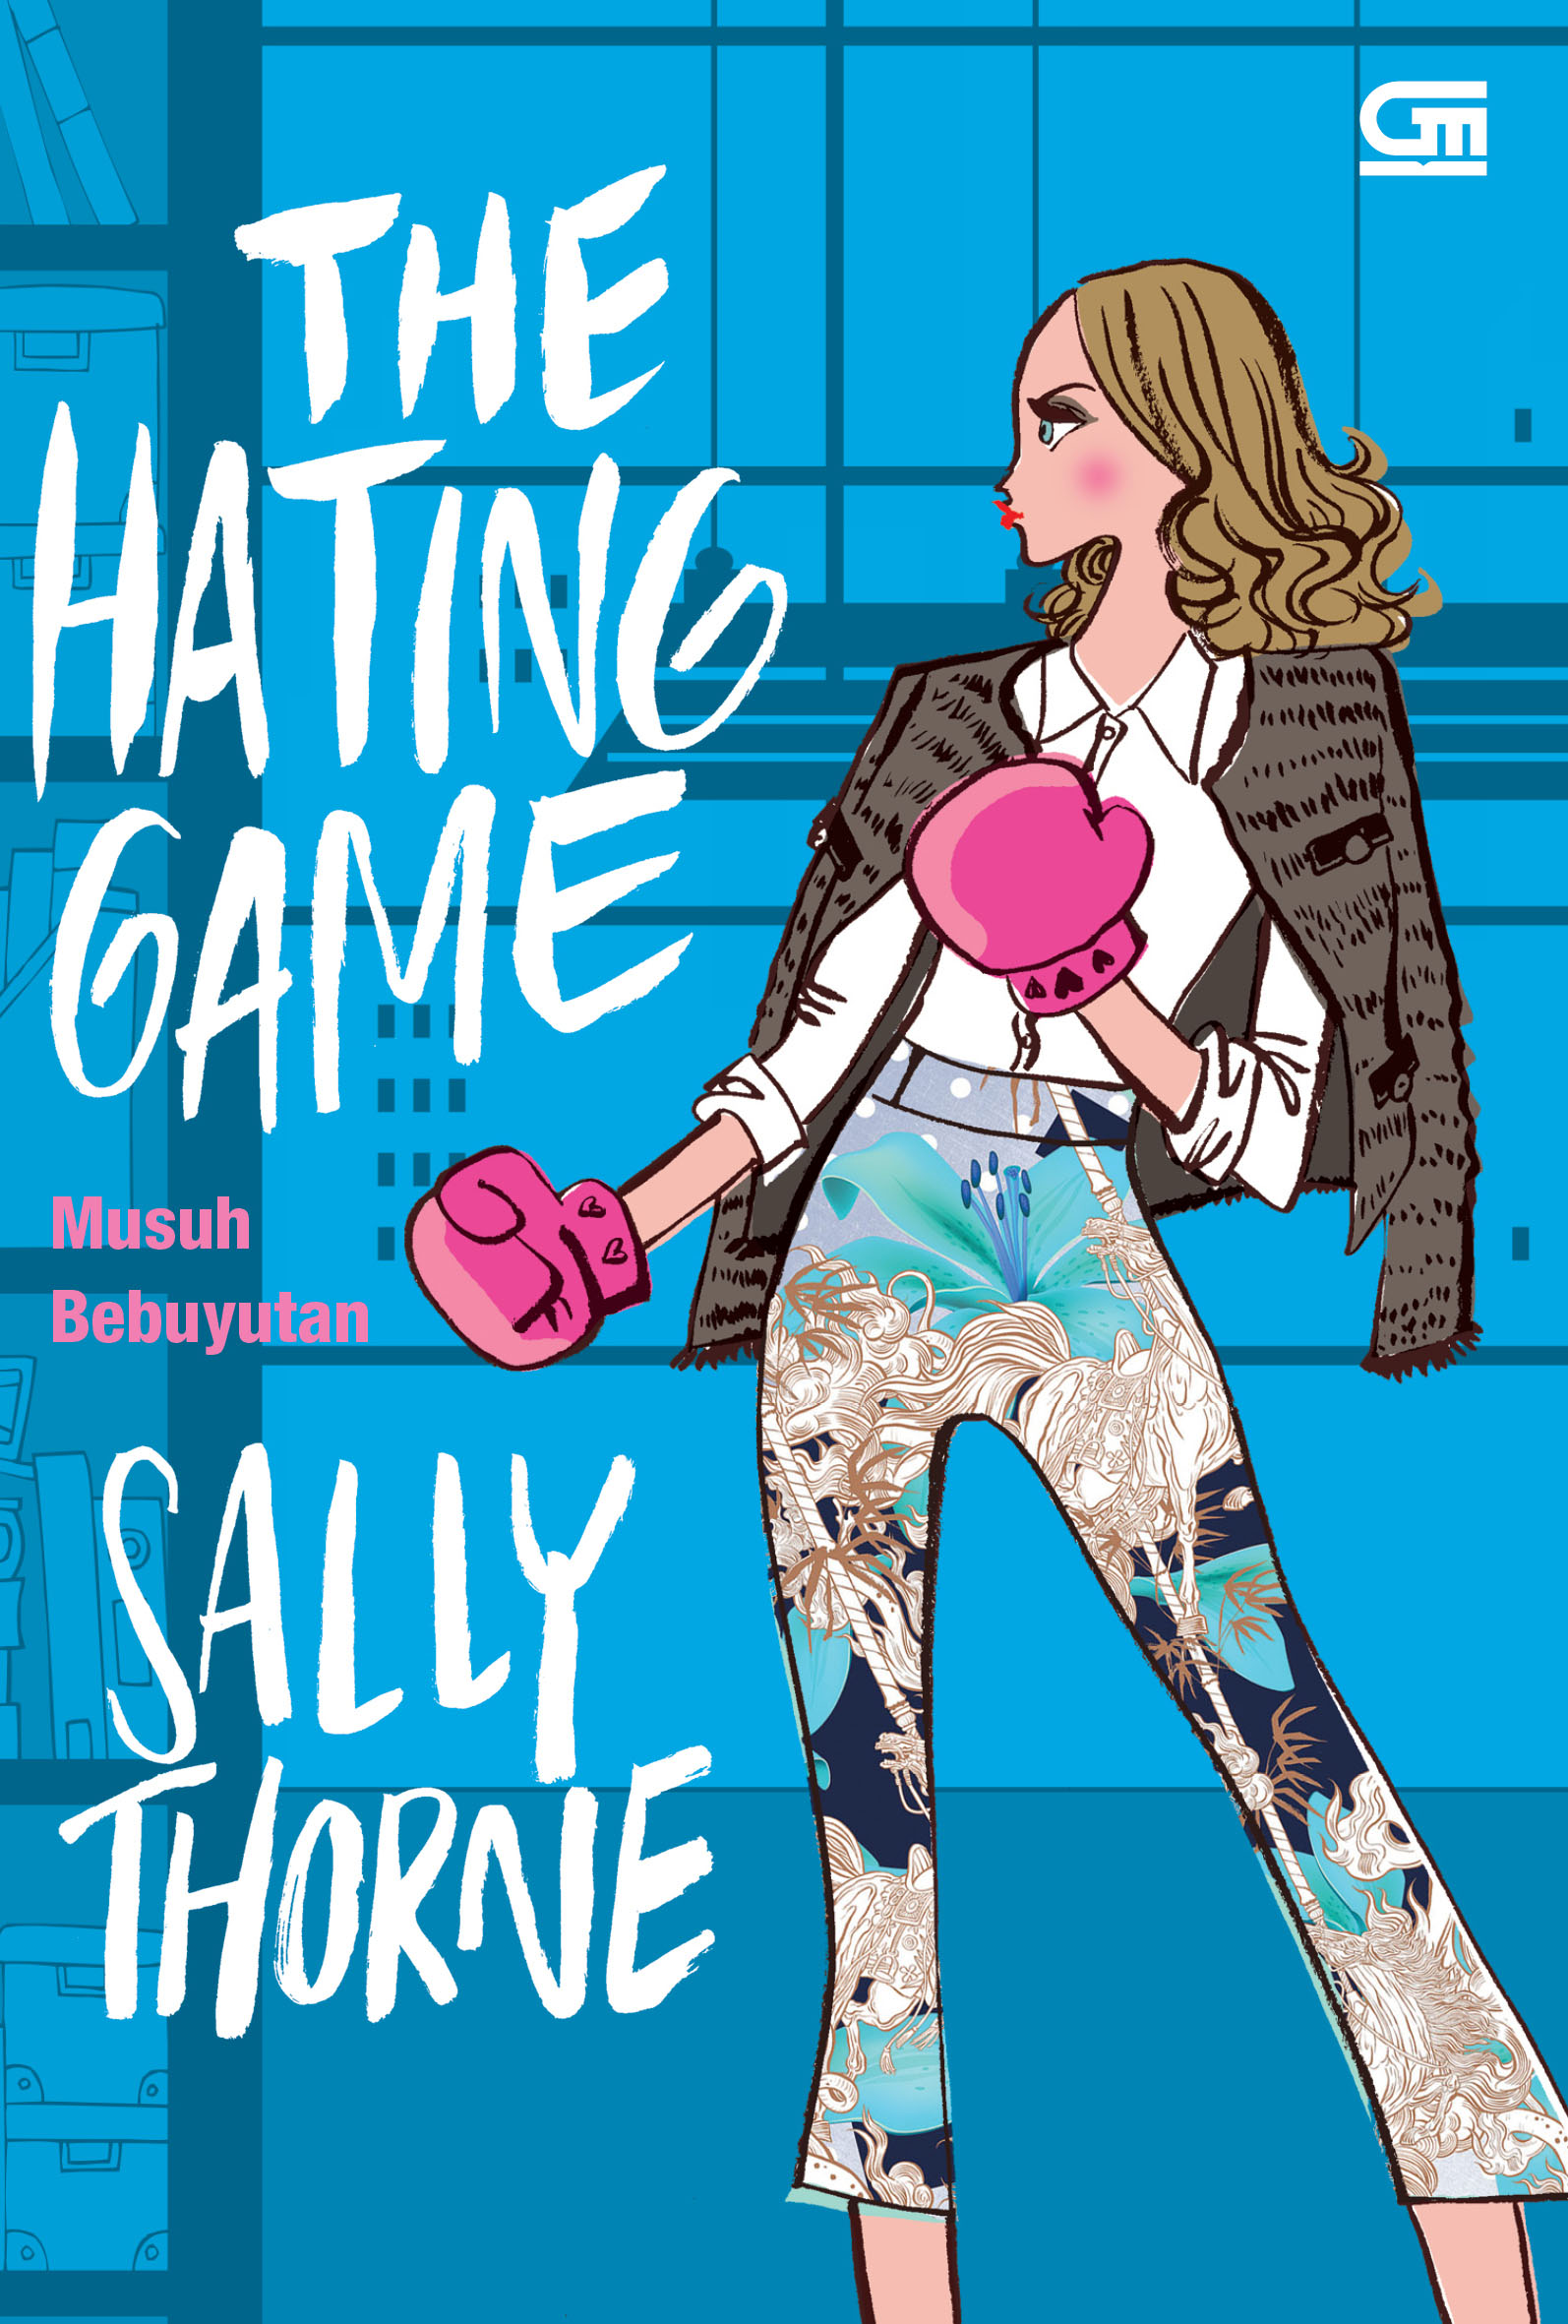 ChickLit: Musuh Bebuyutan (The Hating Game)